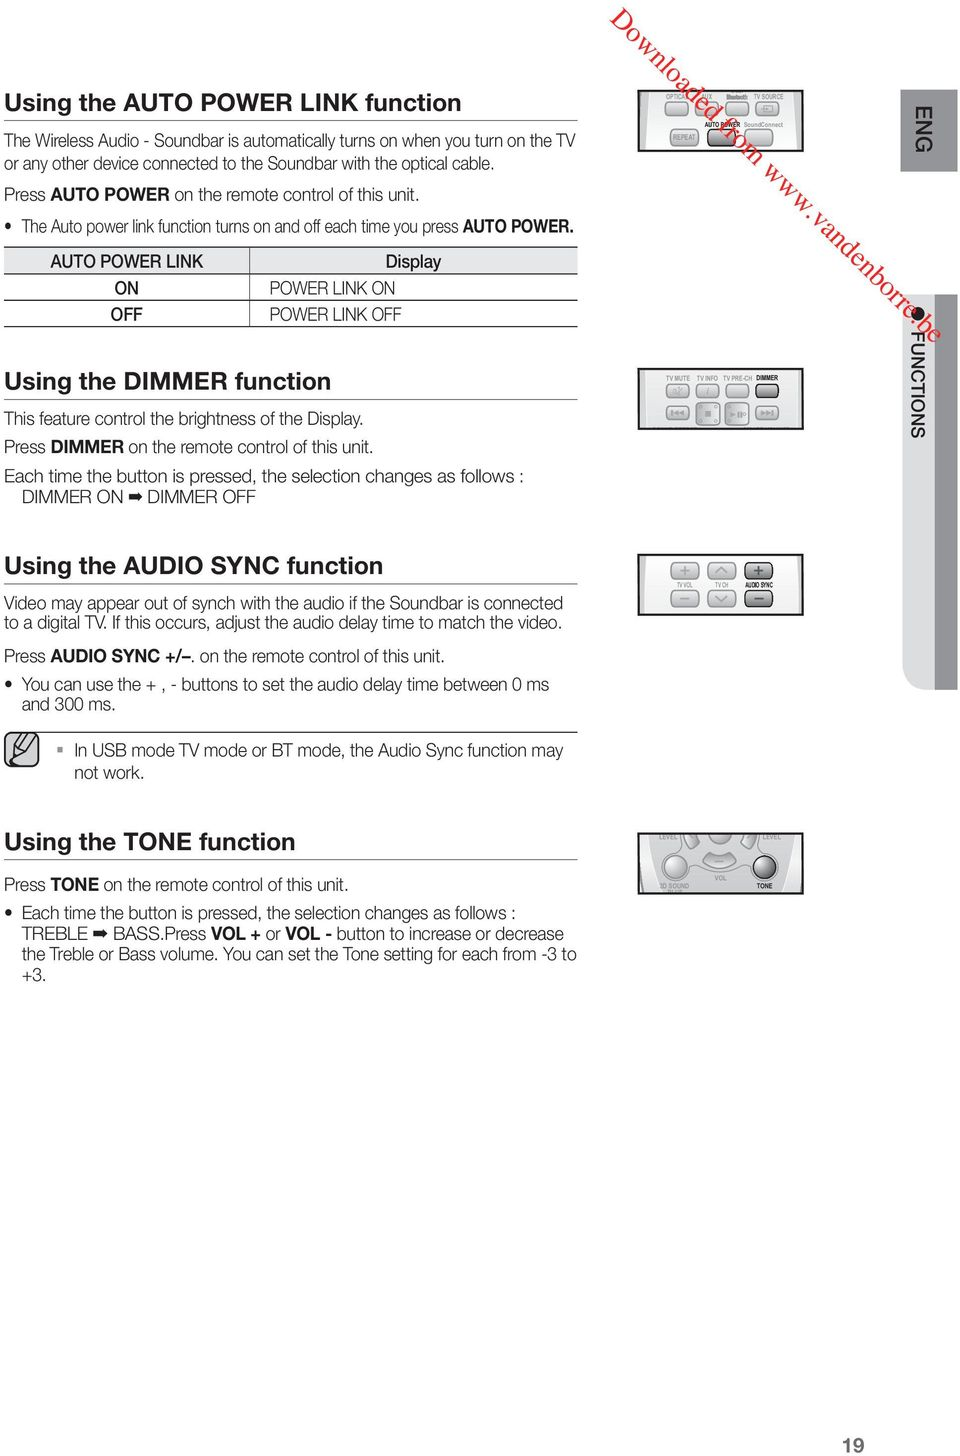 Wireless Audio - Soundbar (Active Speaker System) user manual - PDF